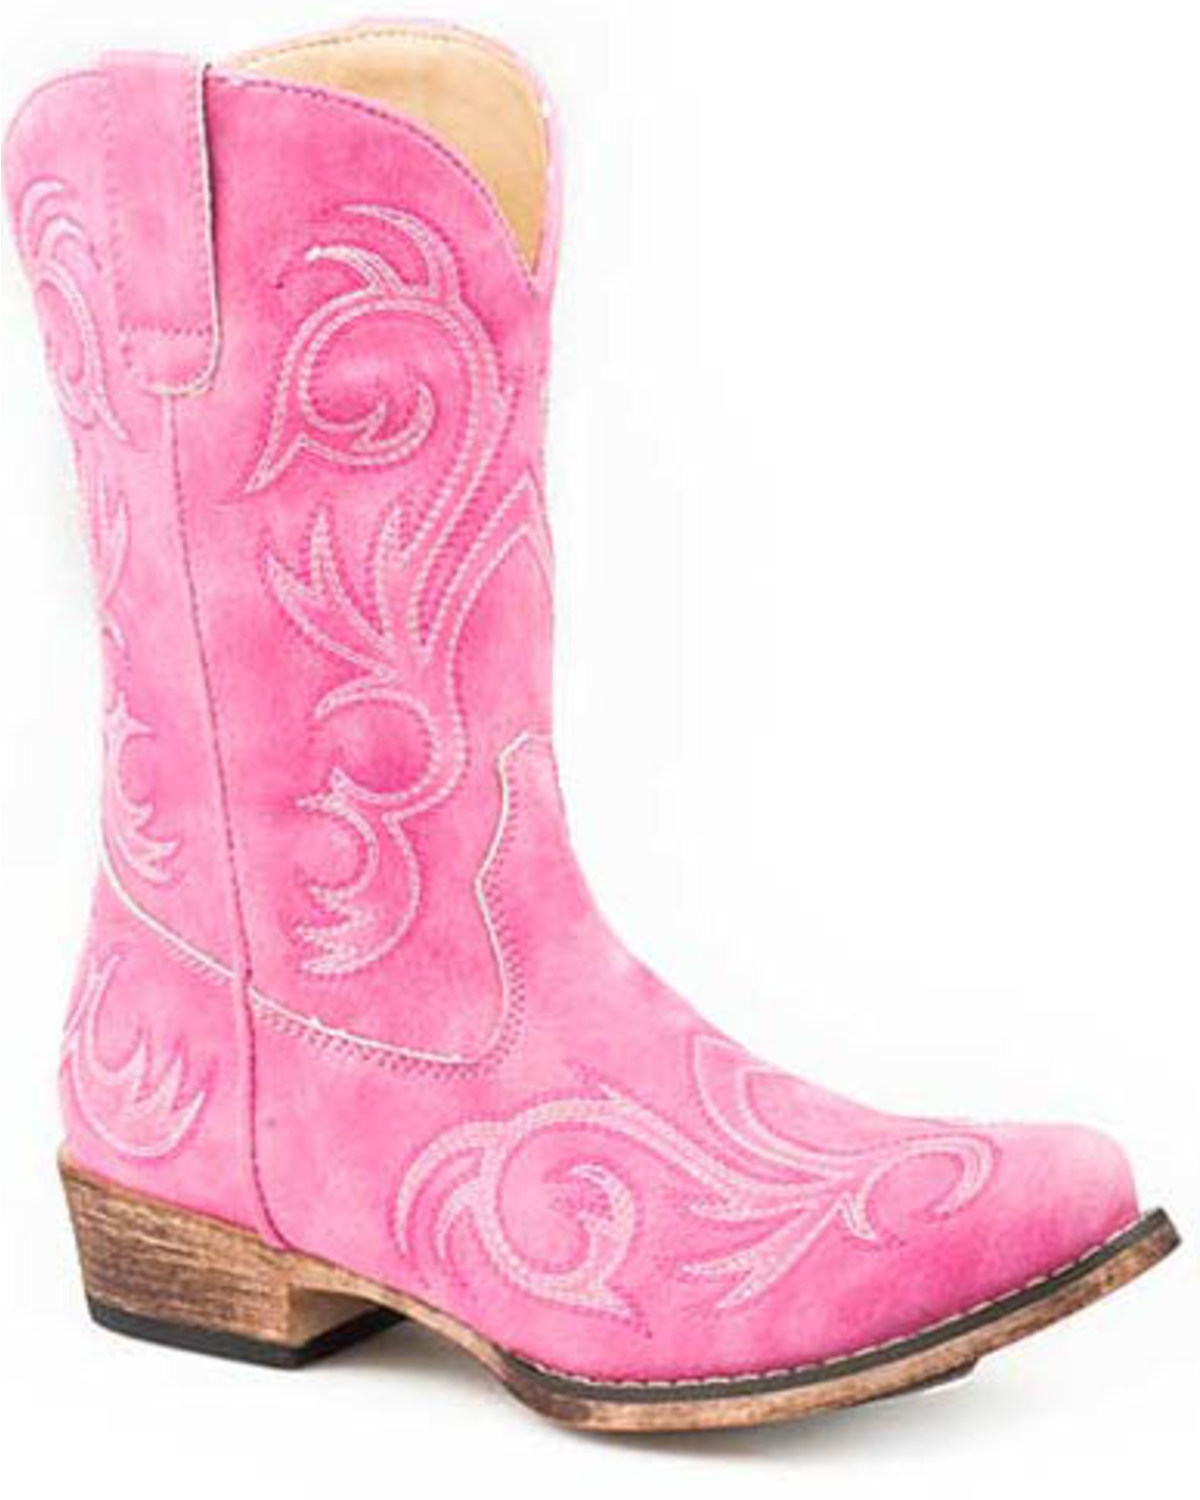 girls boots pink